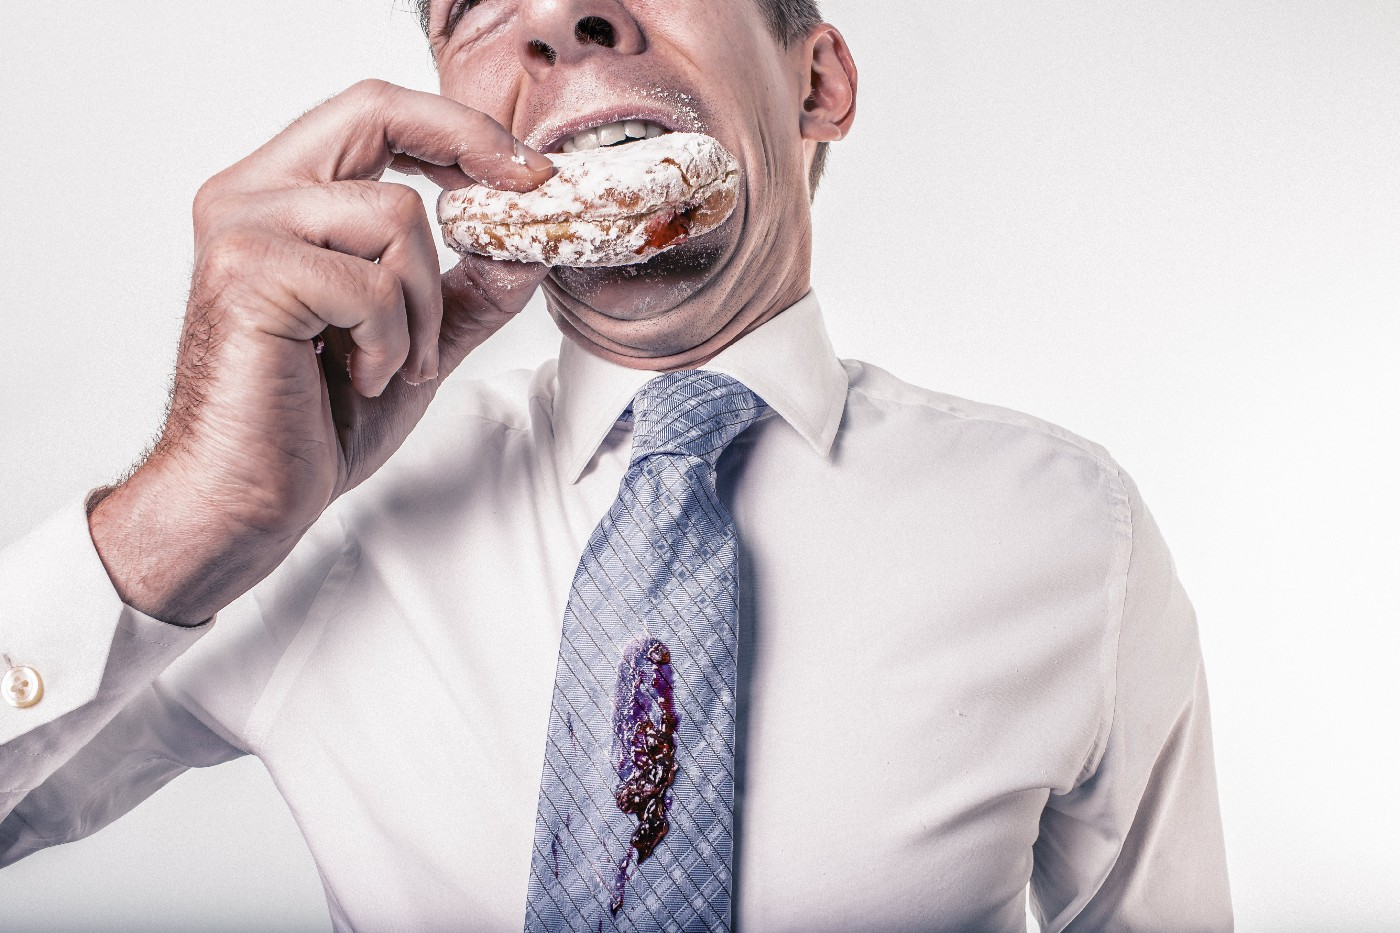 A man in business casual clothing eating a jelly doughnut with jam on his tie.